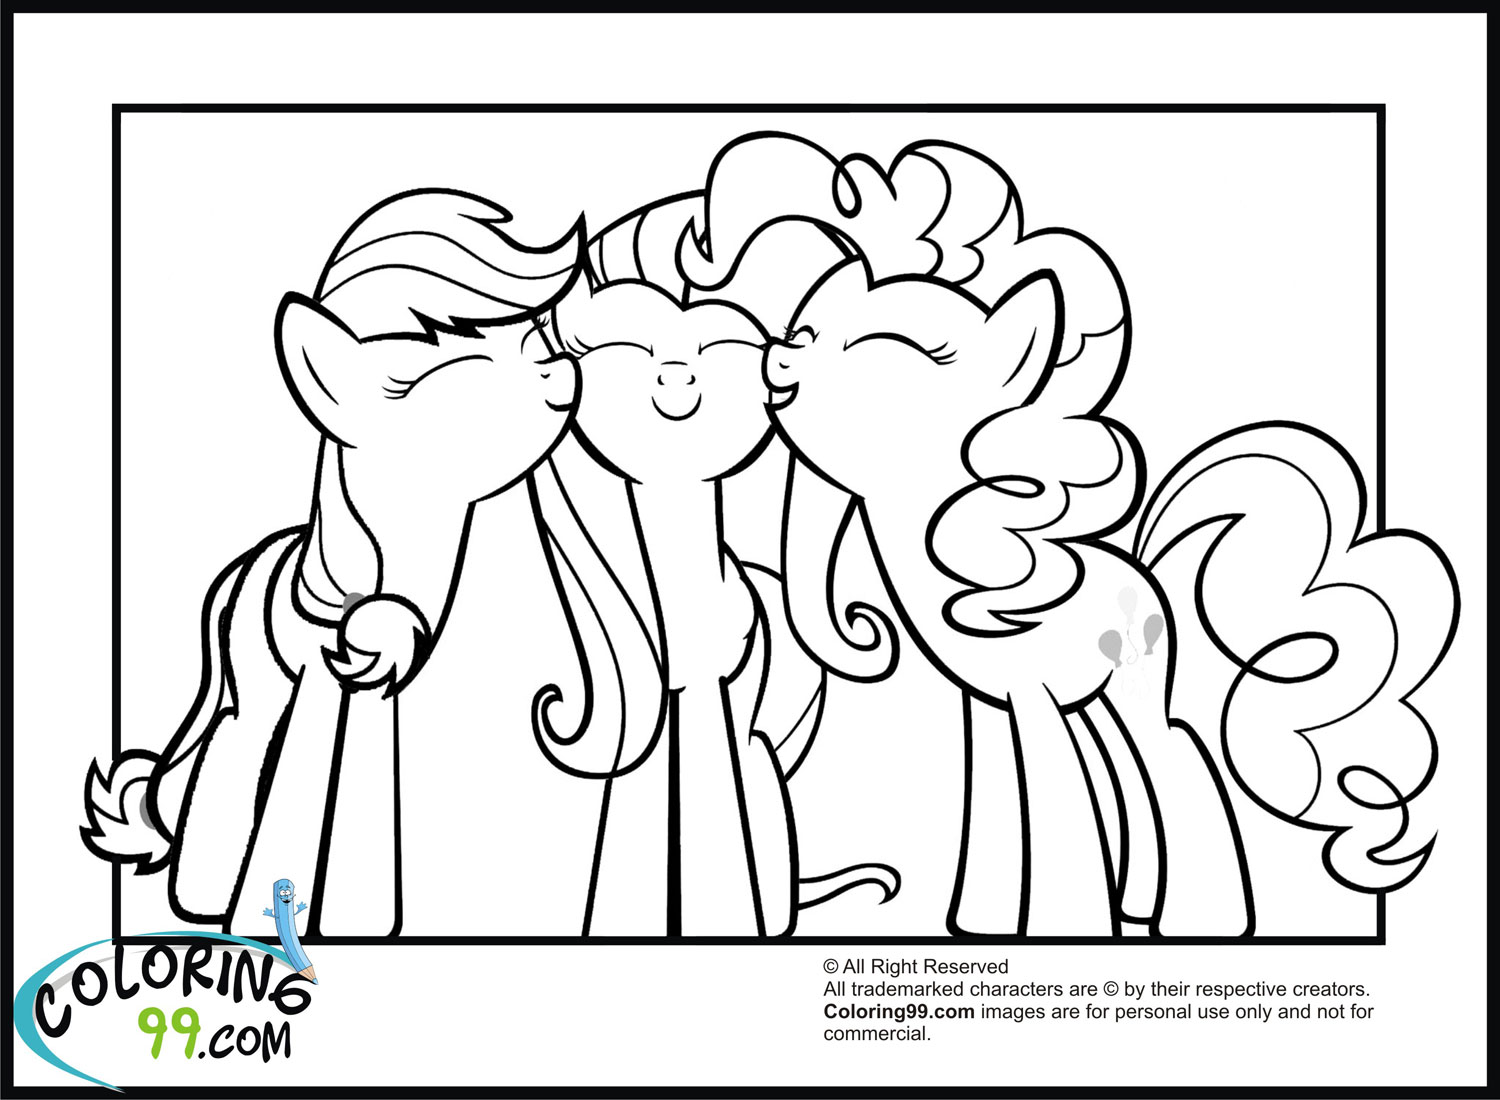 My little pony on Pinterest My Little Pony, Pinkie Pie and  - my little pony coloring pages pinkie pie